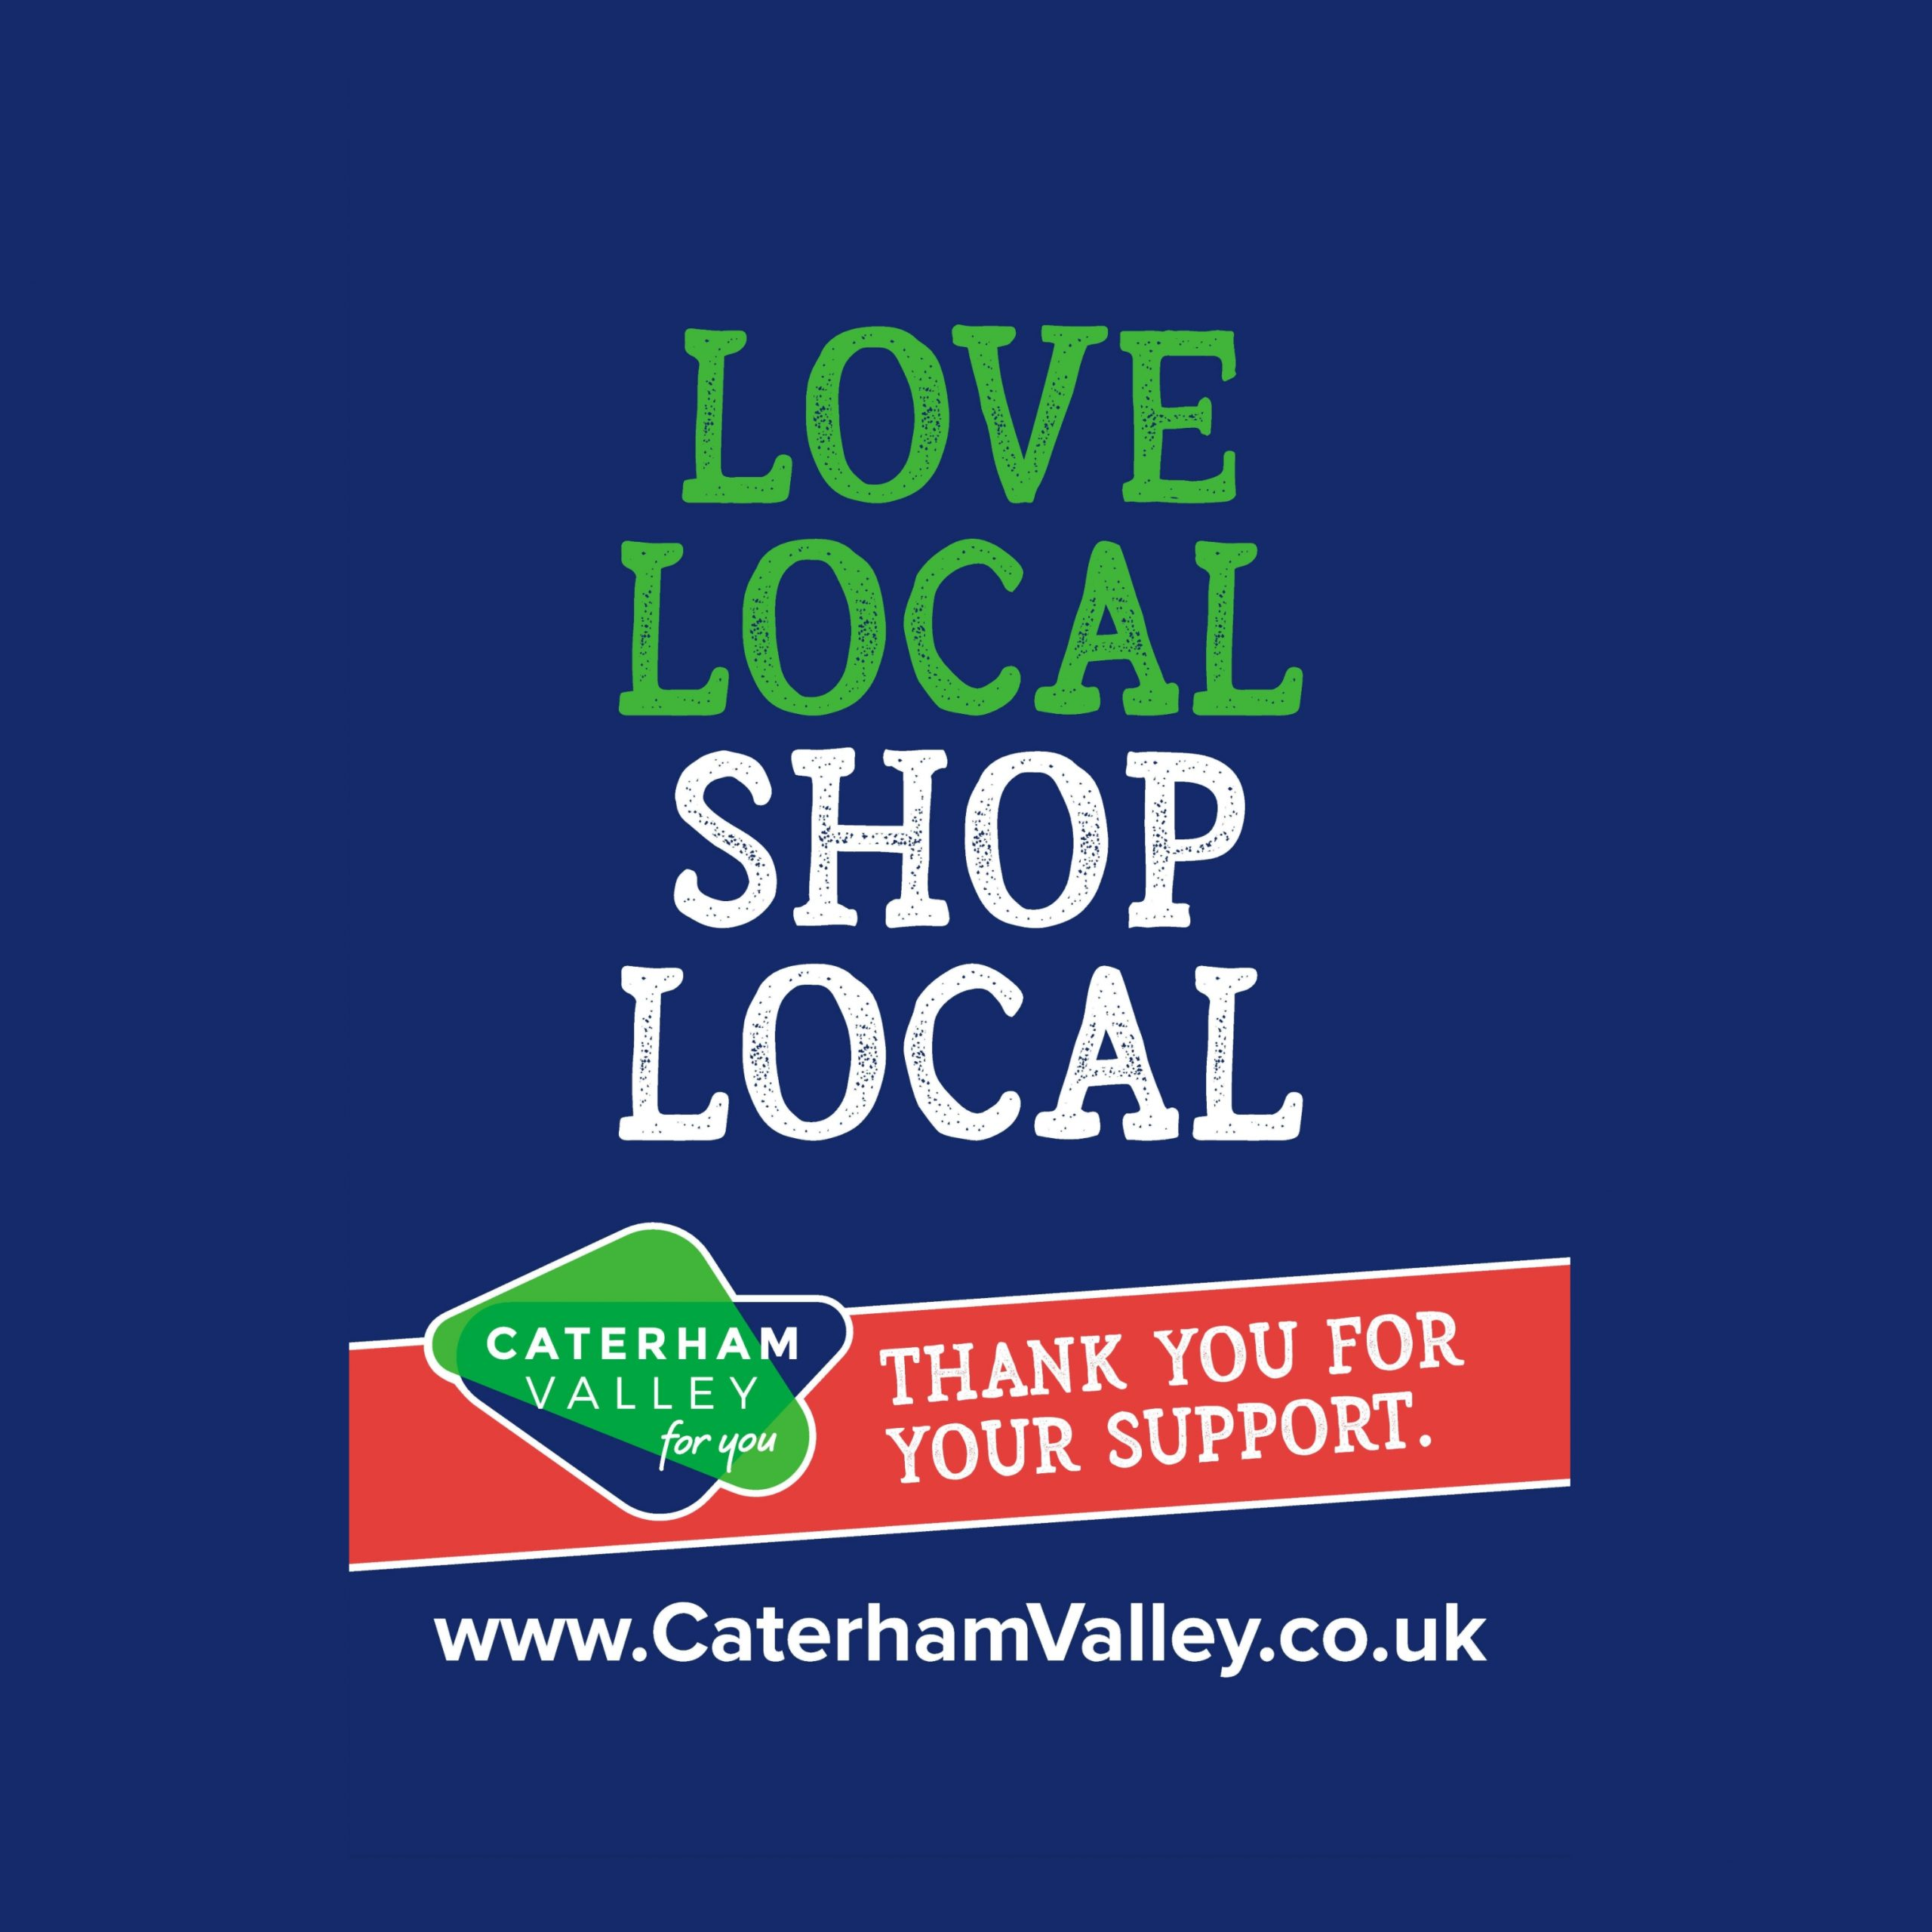 Caterham Valley For You Love Local Shop Local book end home 1